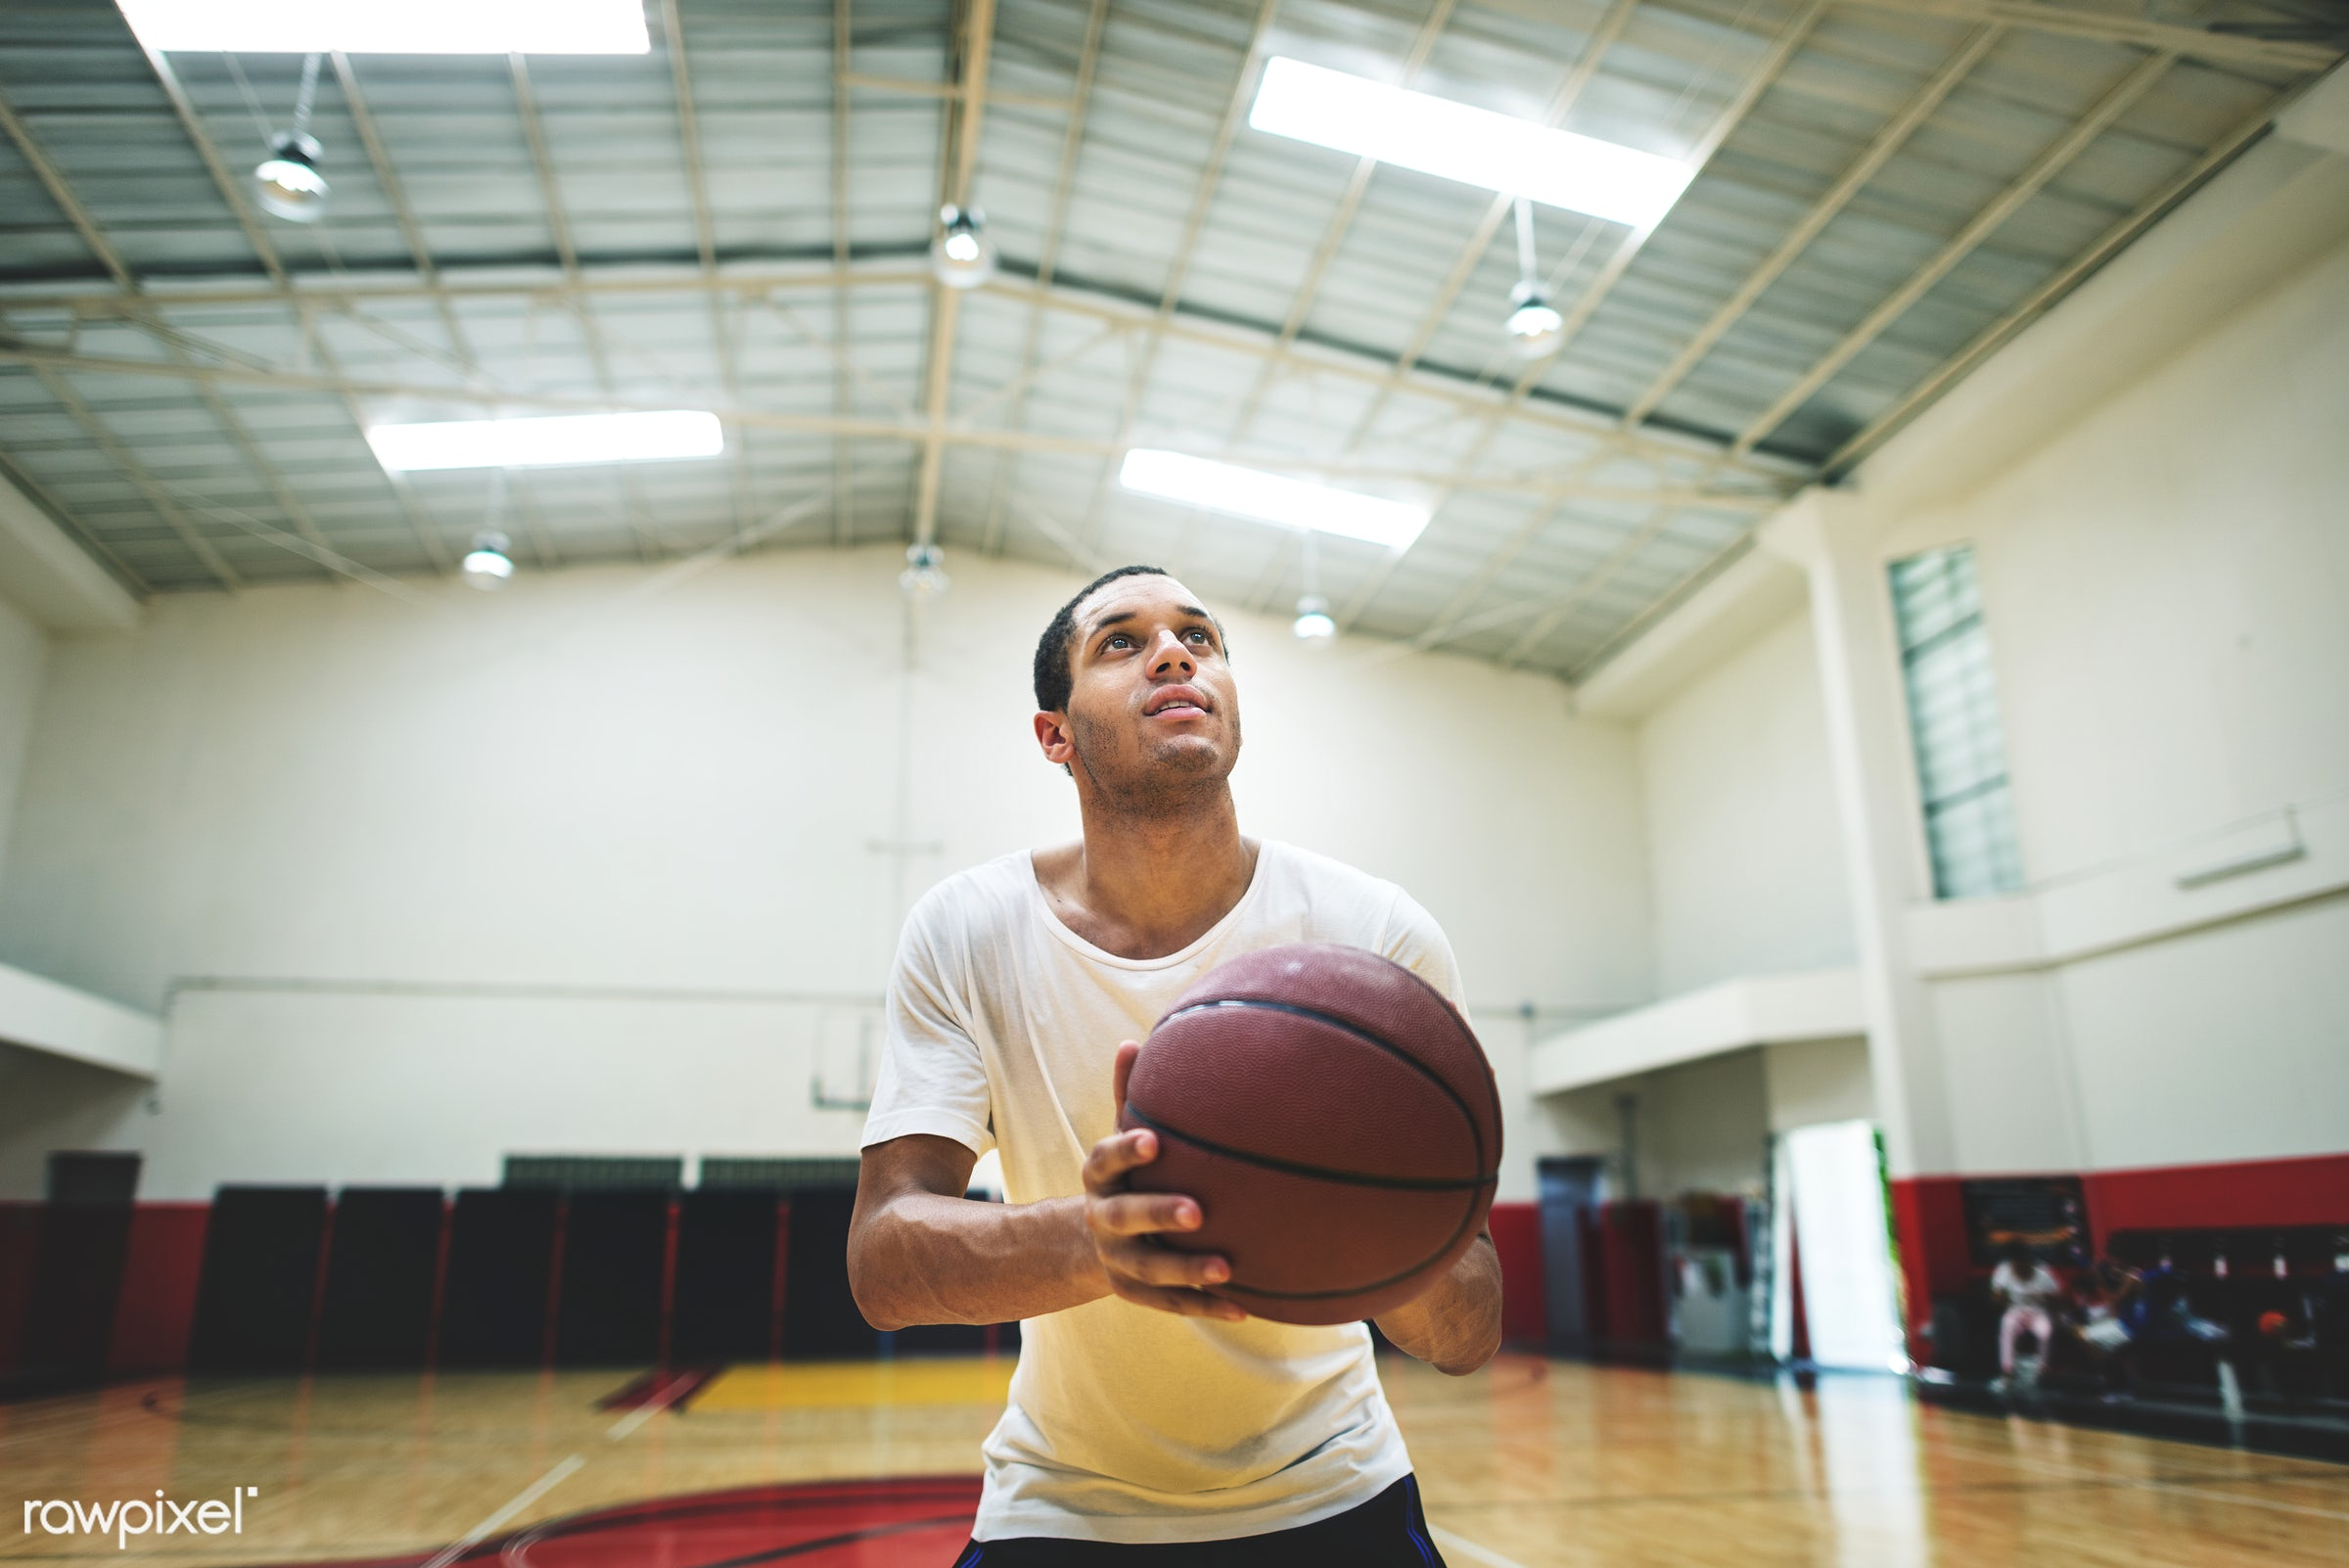 Young basketball player shoot - basketball, activity, alone, boy, court, exercise, game, gym, gymnasium, man, one, play,...